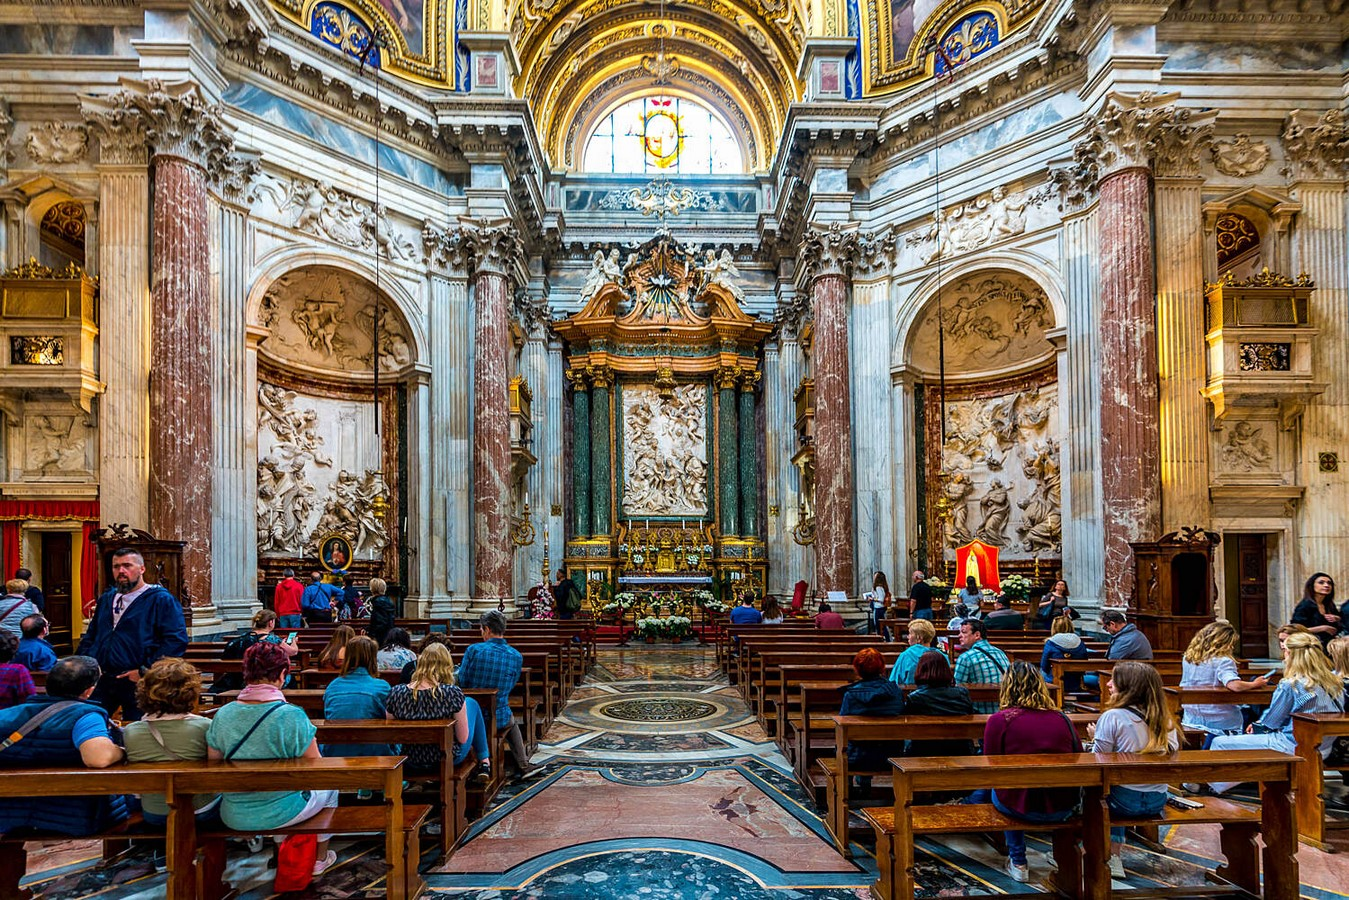 10 Things you did not know about Piazza Navona, Rome - Sheet5